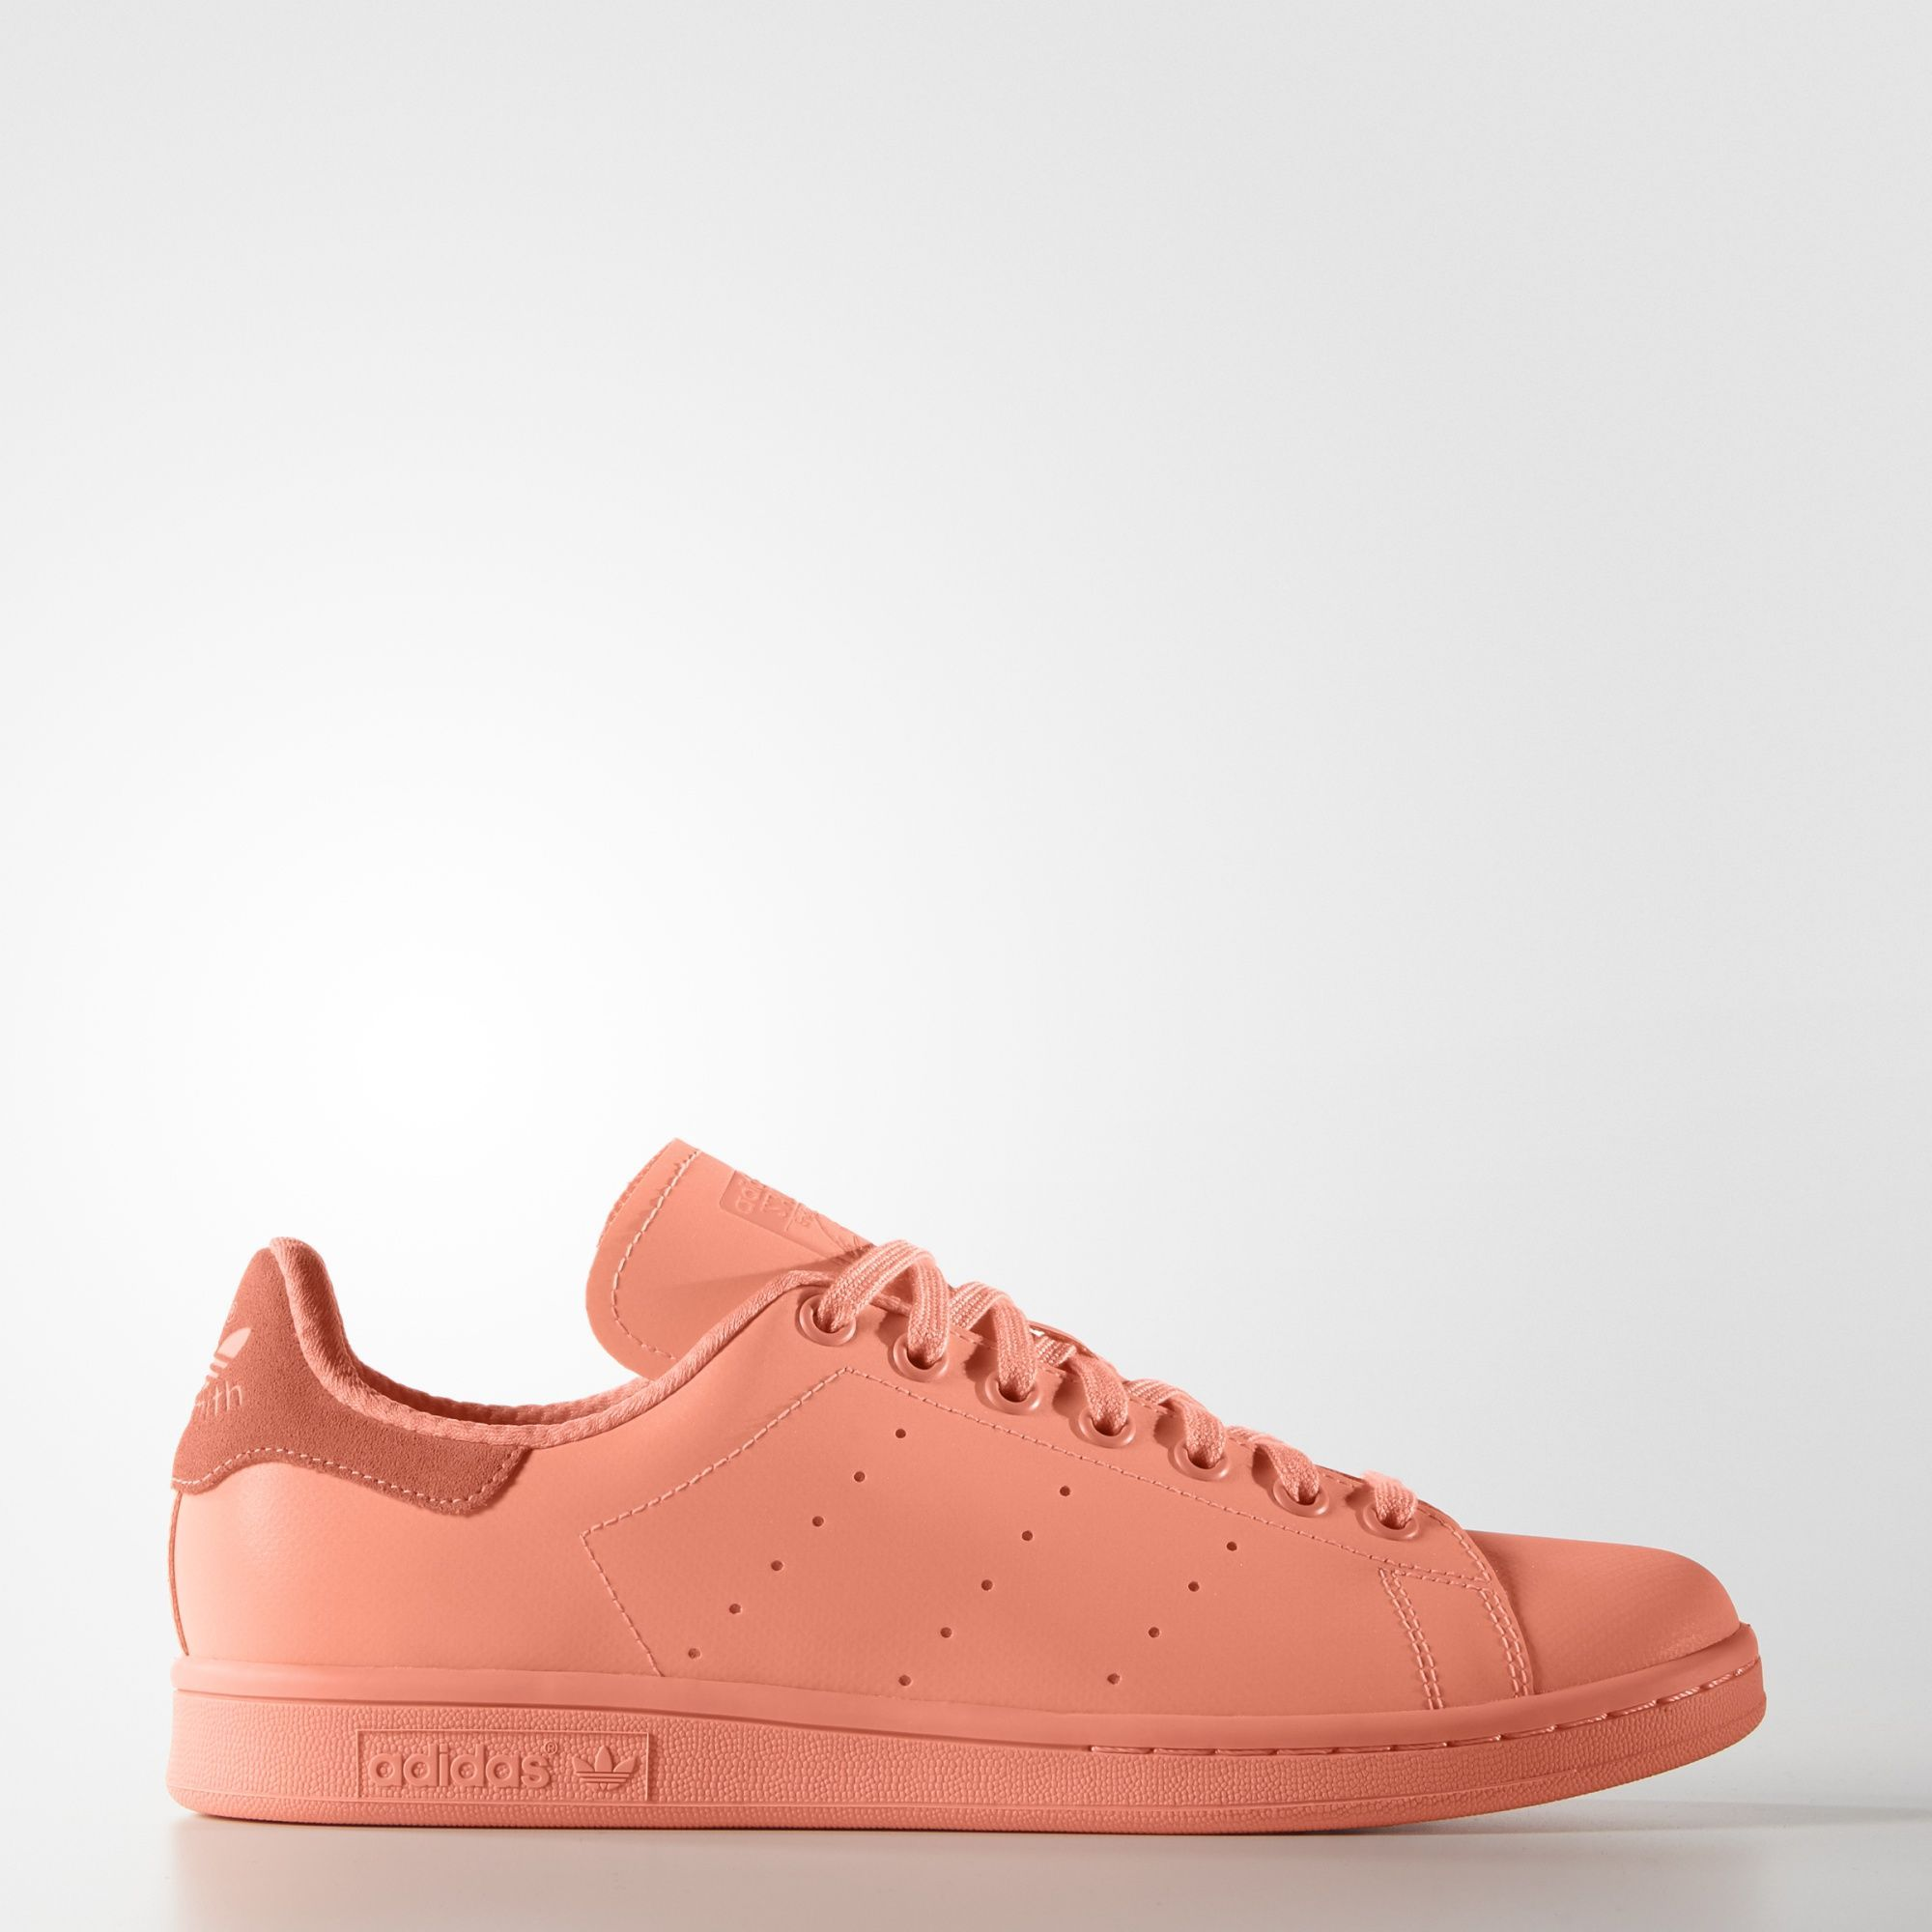 Adidas Stories Smith Creme Patisserie ShoesColor Stan CWdxeBro